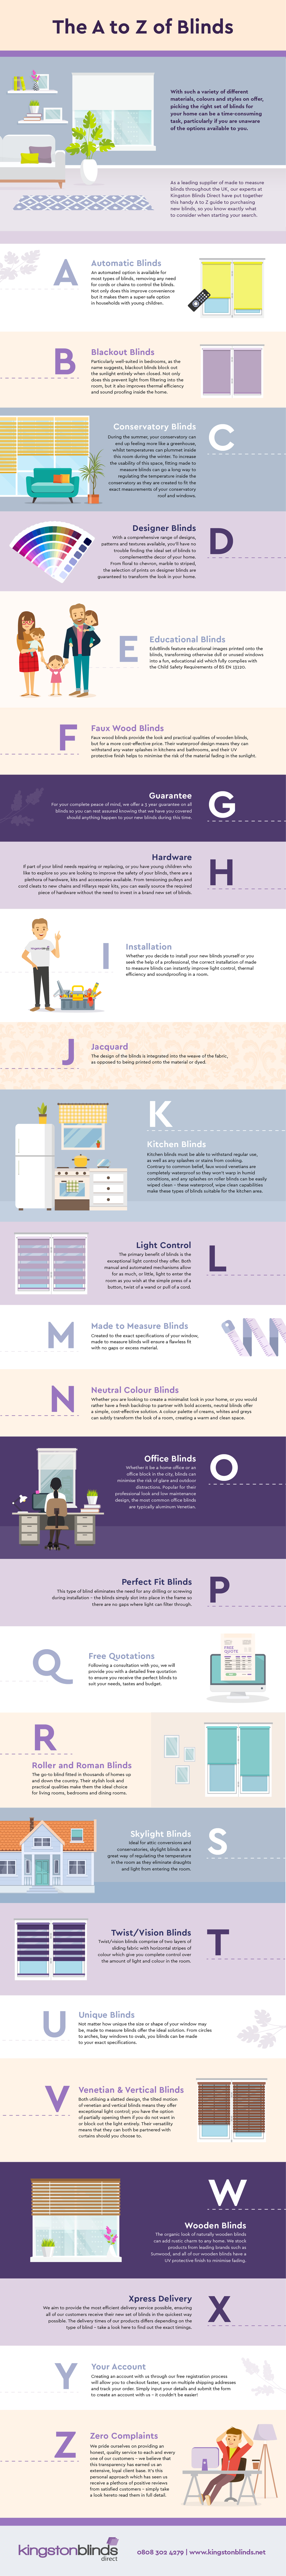 Kingston Blind Direct's A-Z guide to blinds